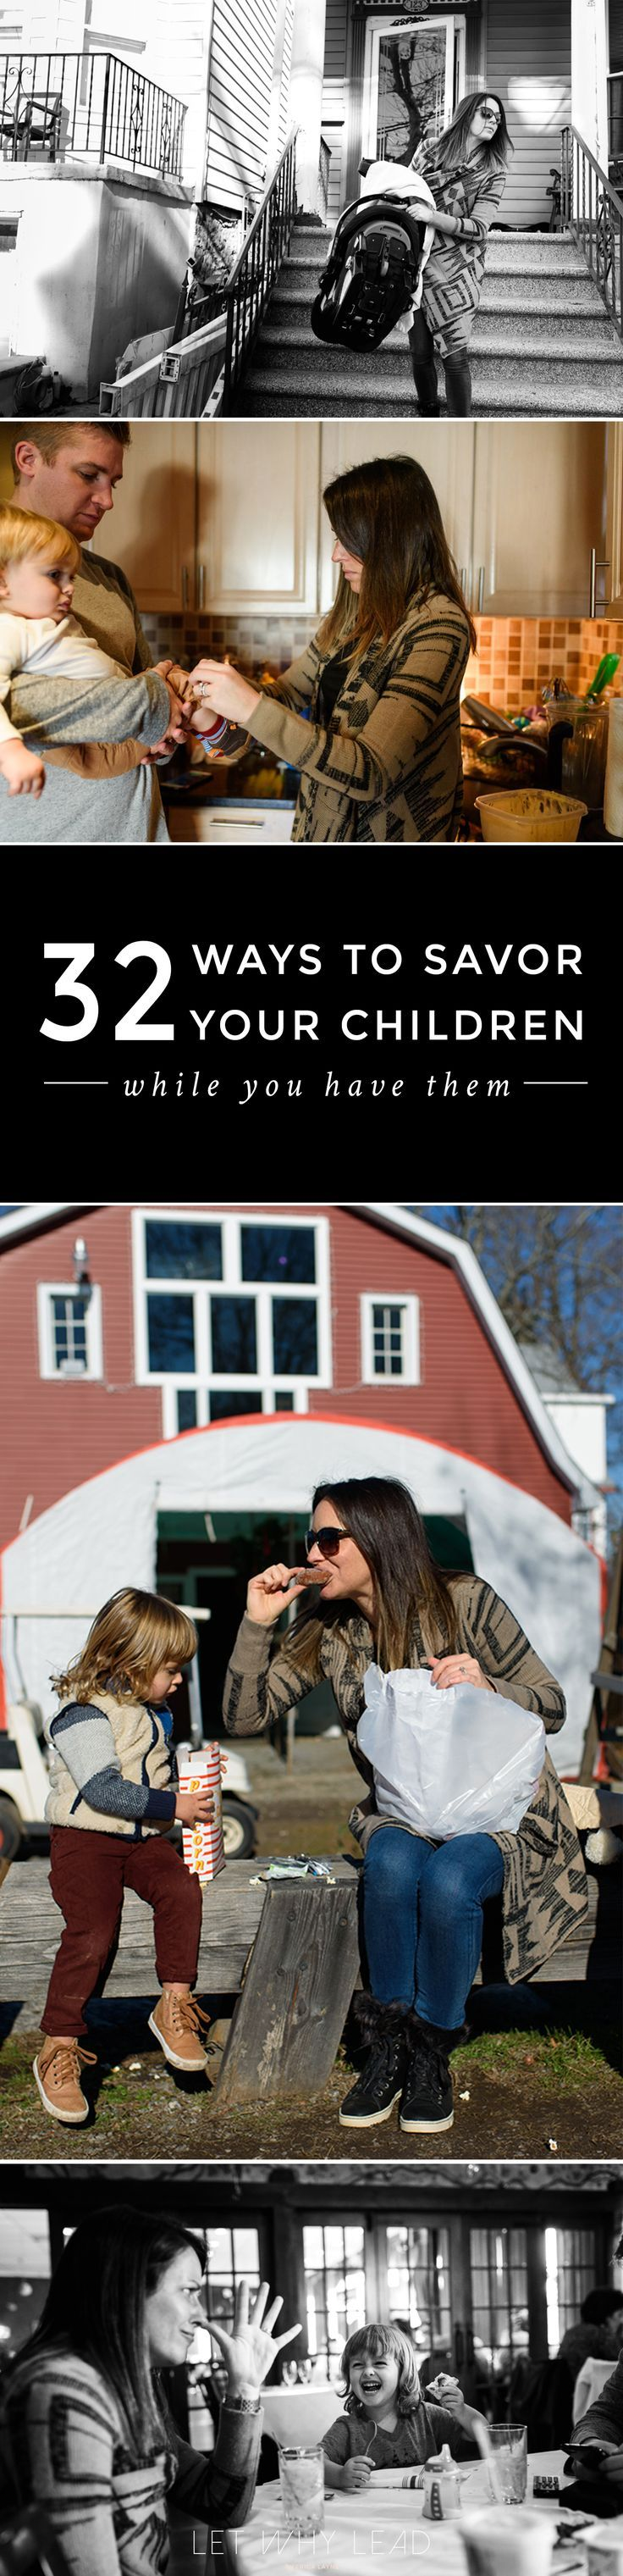 32 Ways to Savor Your Children While You Have Them